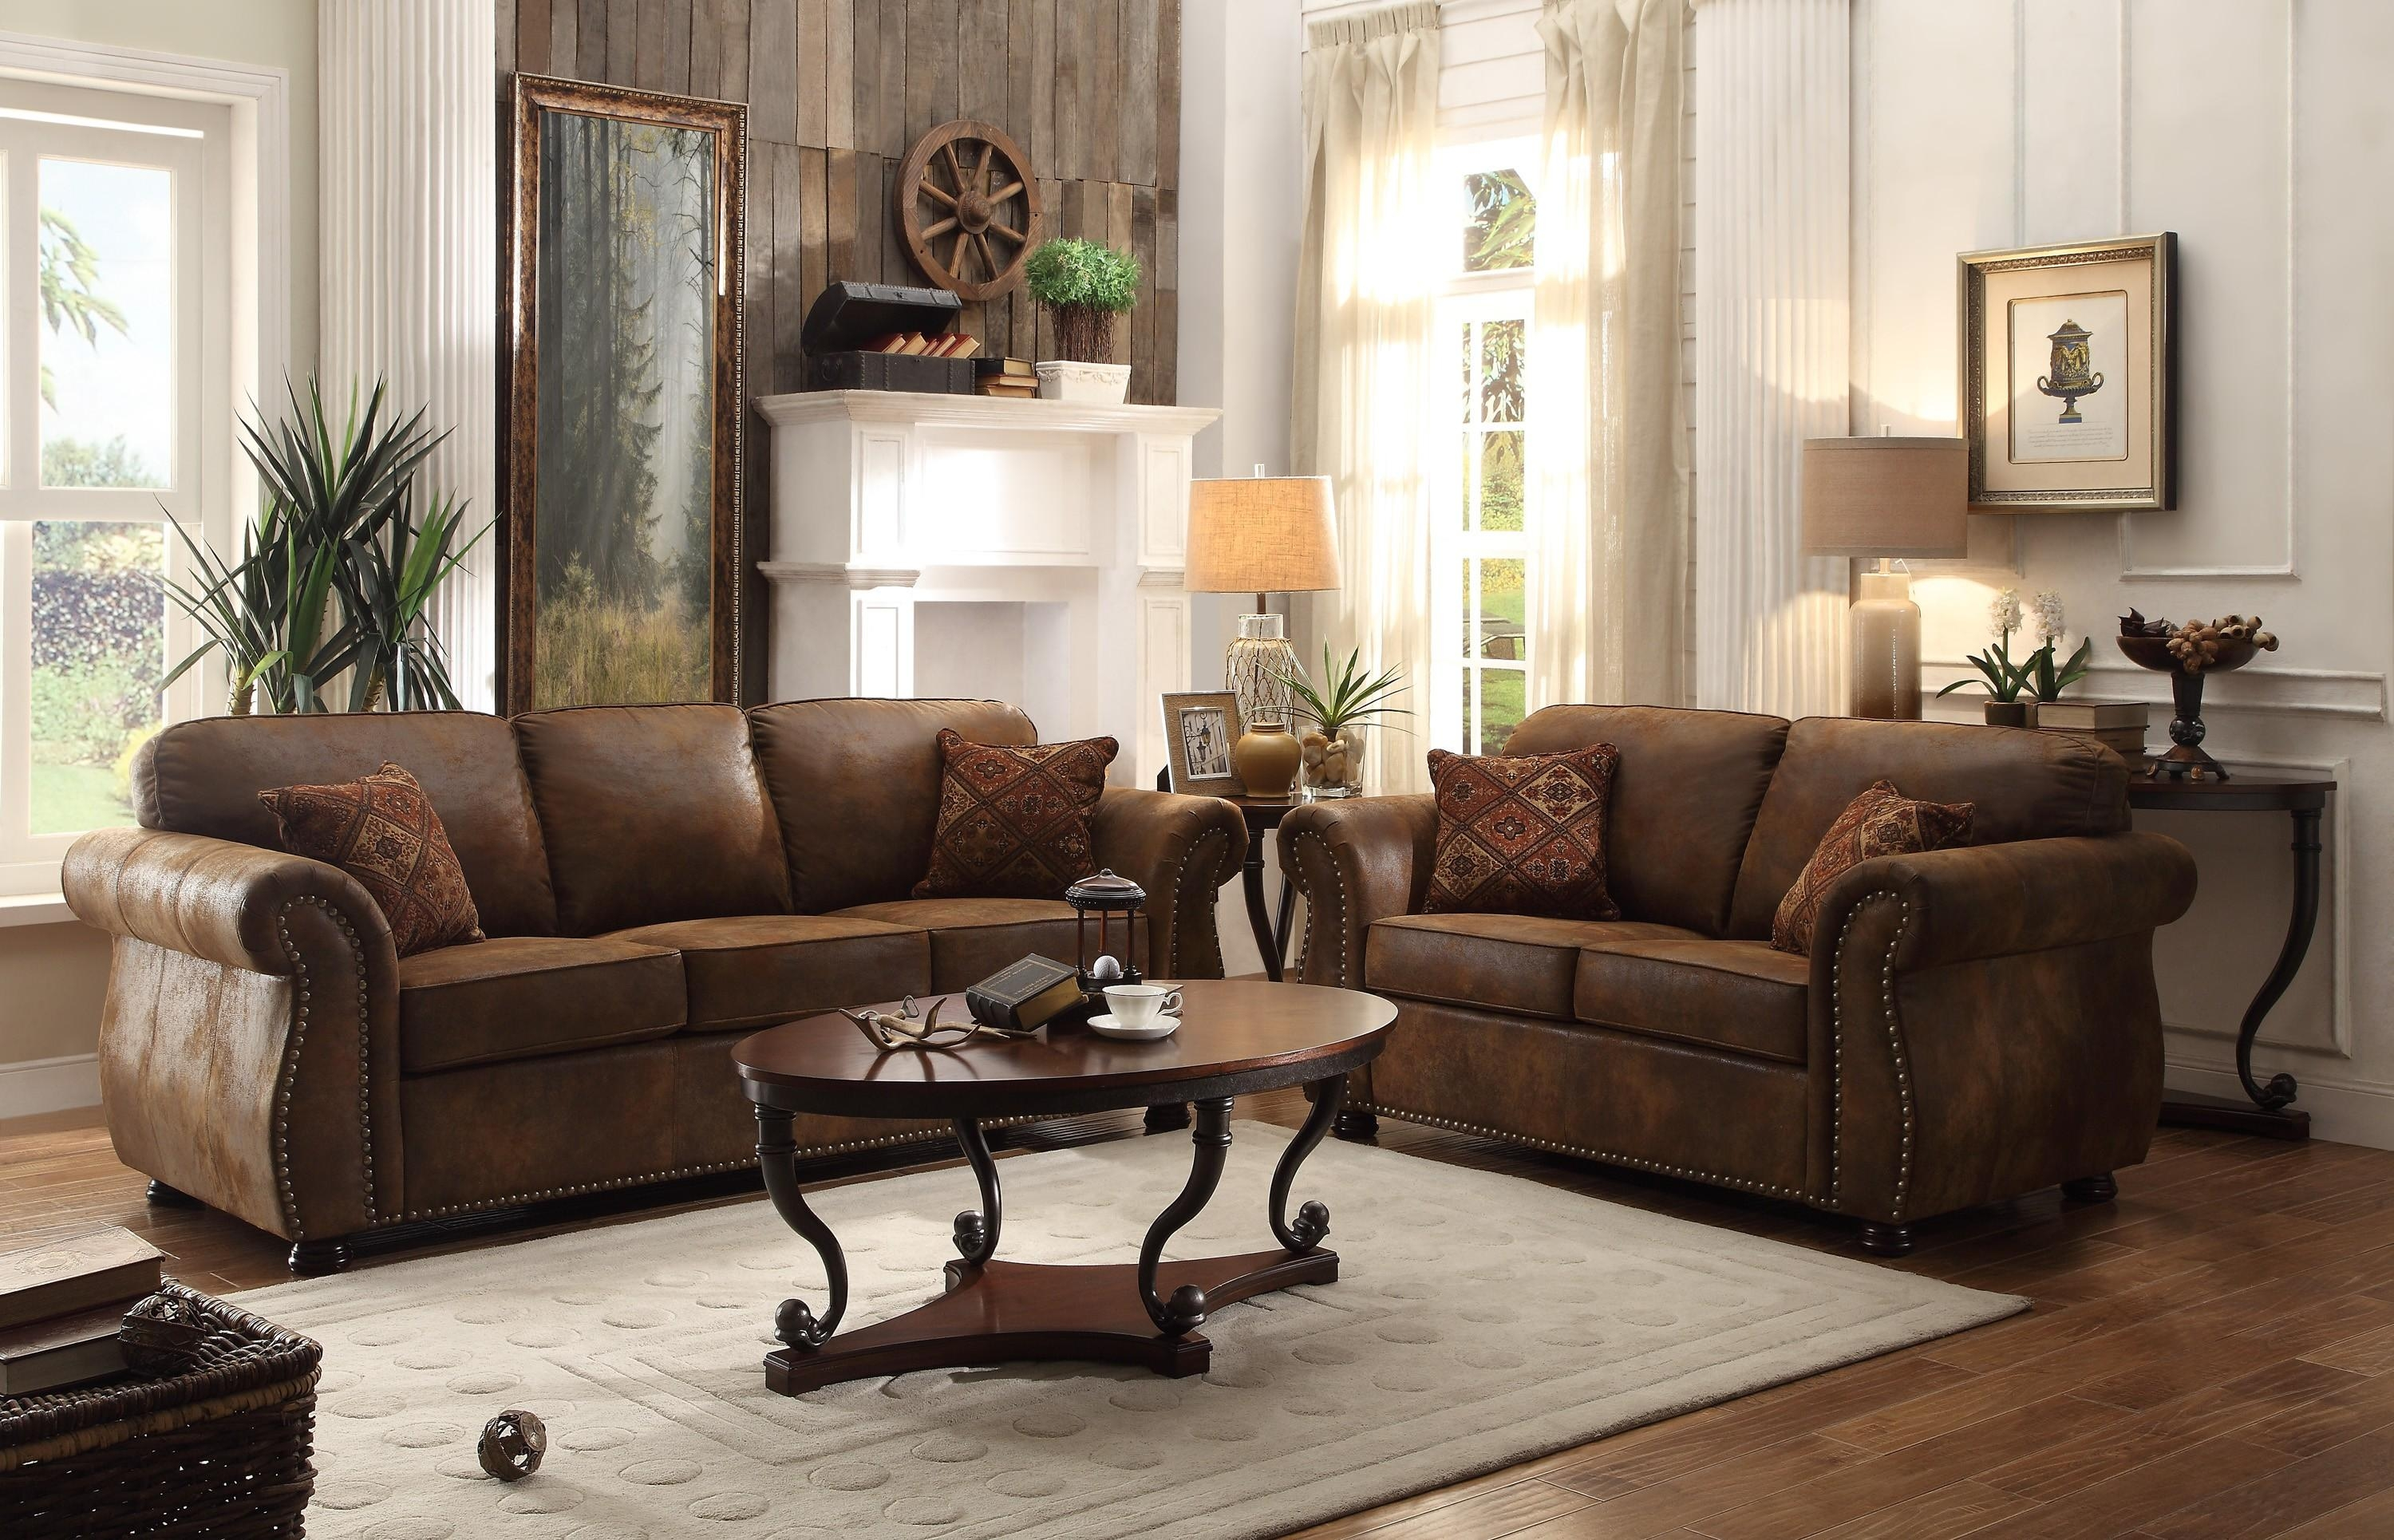 Bomber Jacket Leather Sofa With Inspiration Photo 36373 | Kengire With Regard To Bomber Leather Sofas (View 18 of 20)